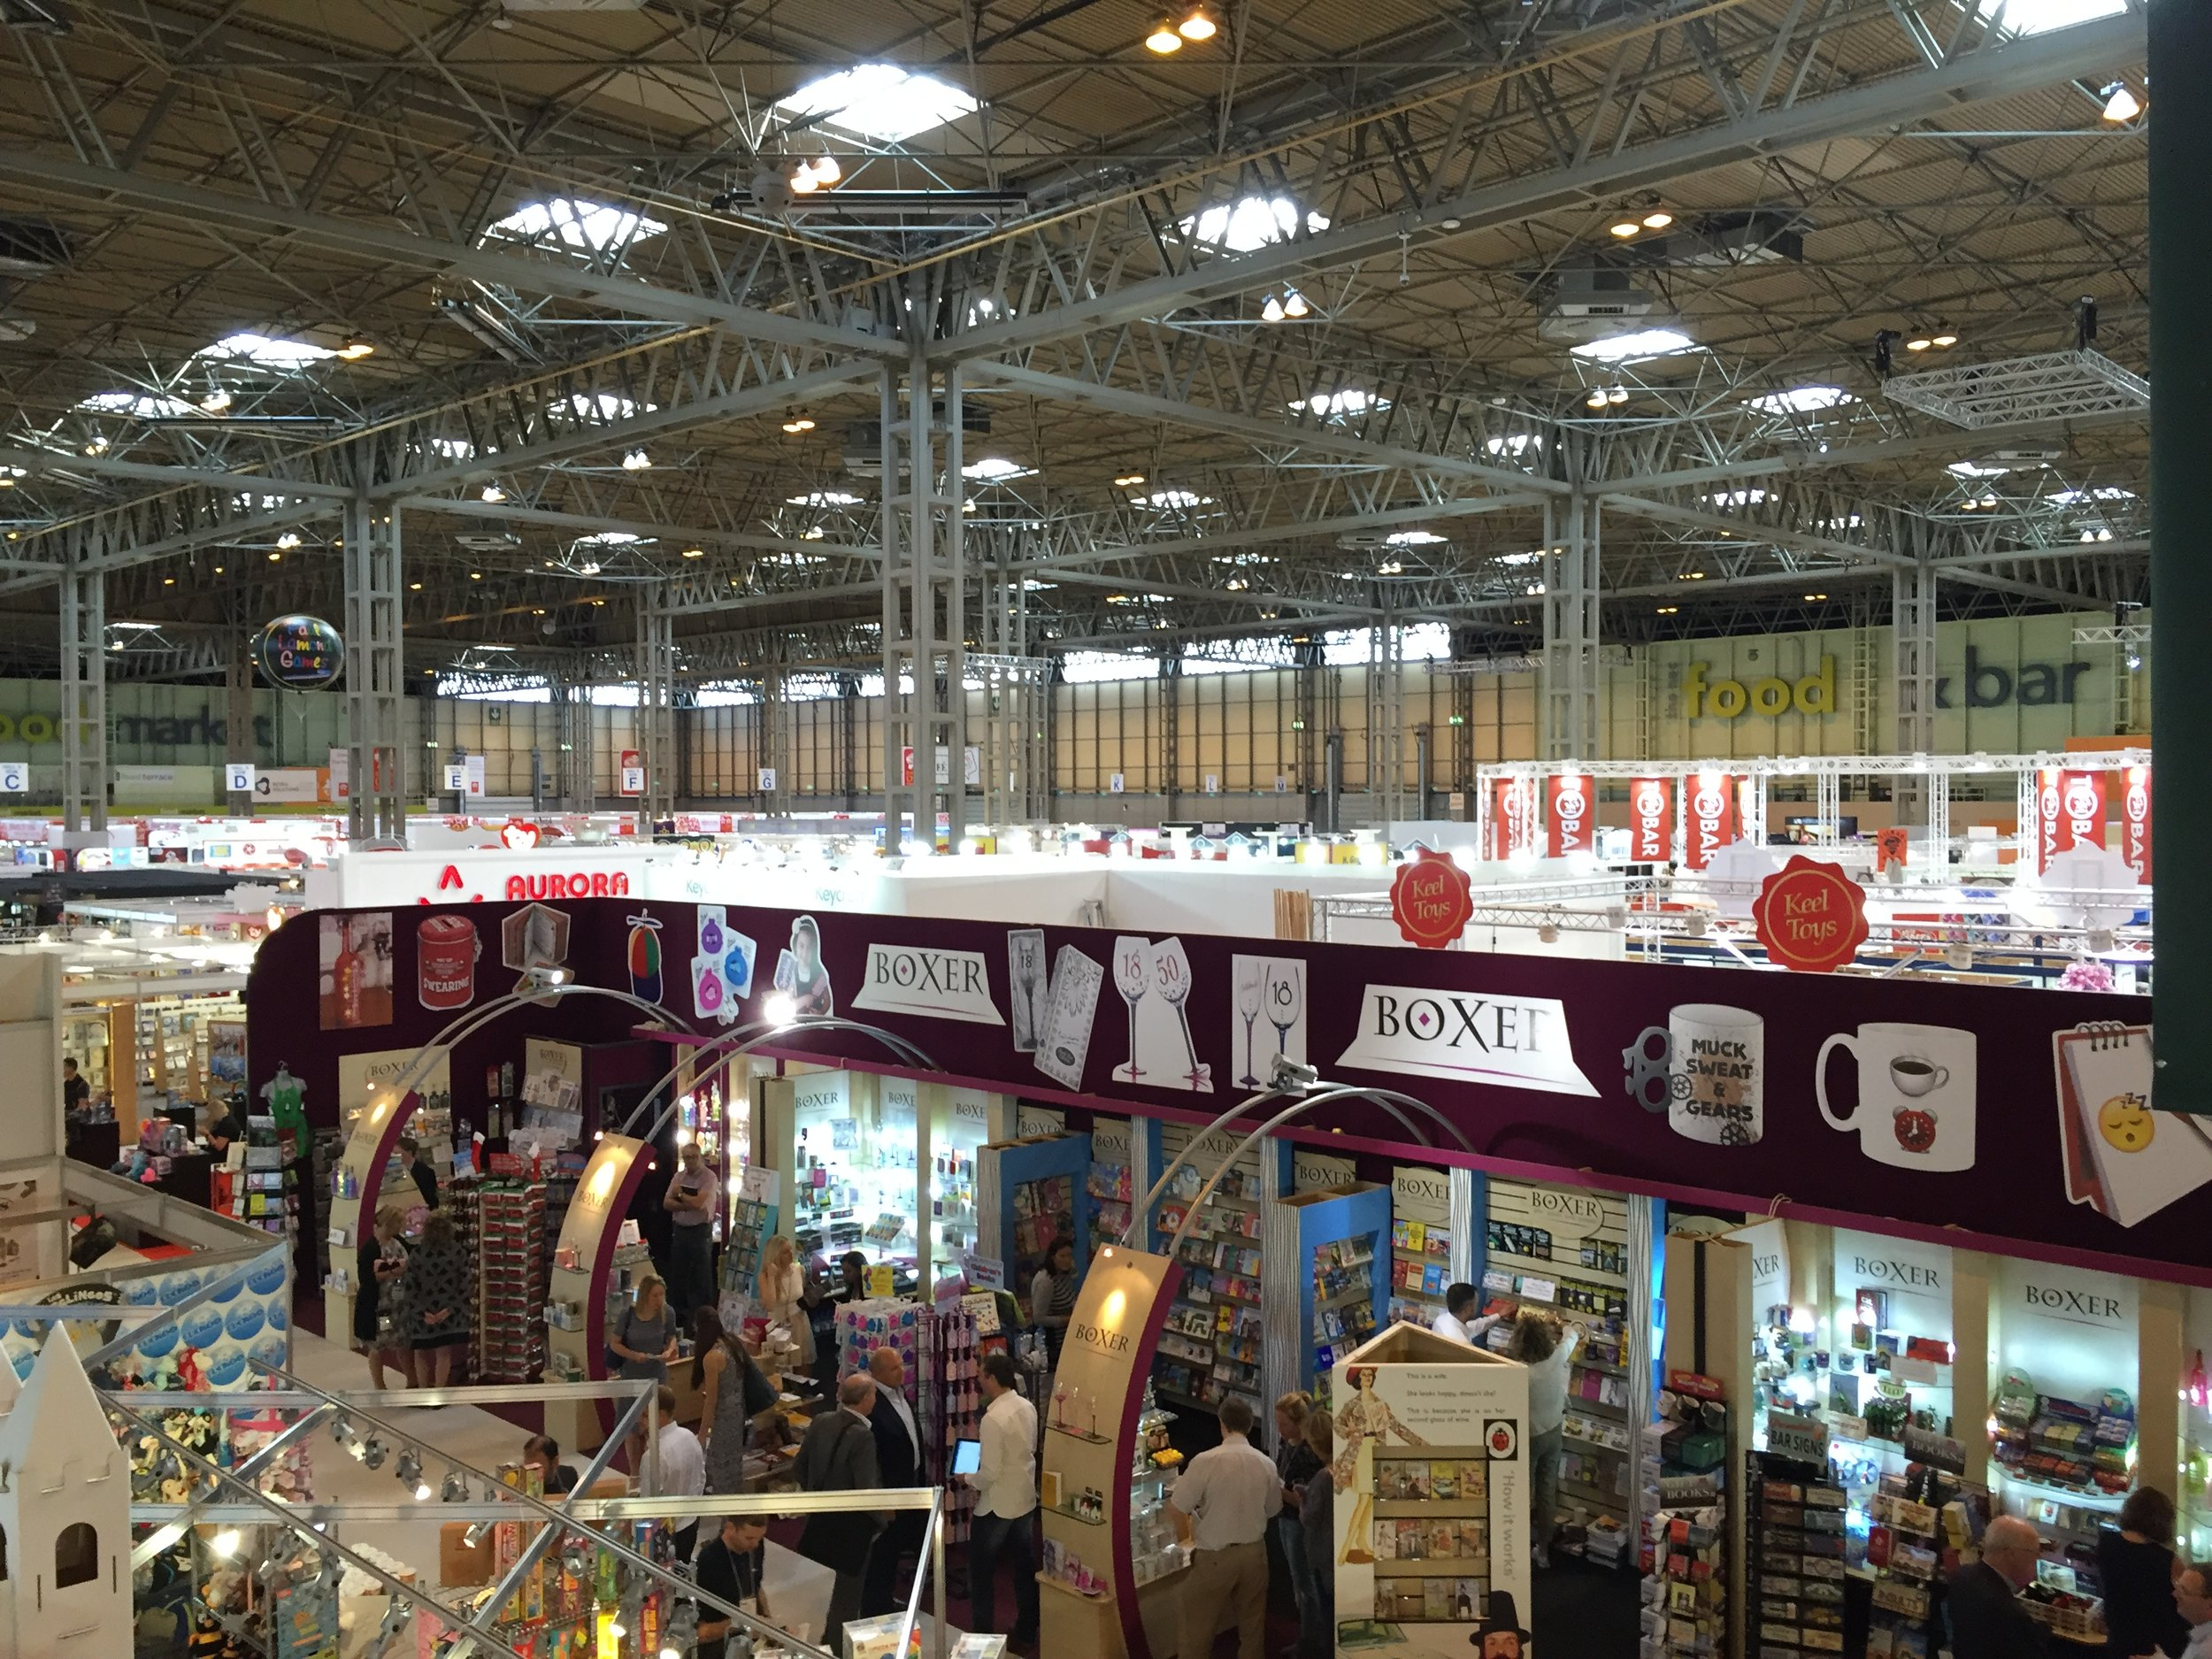 One of the many stalls in Hall 5.